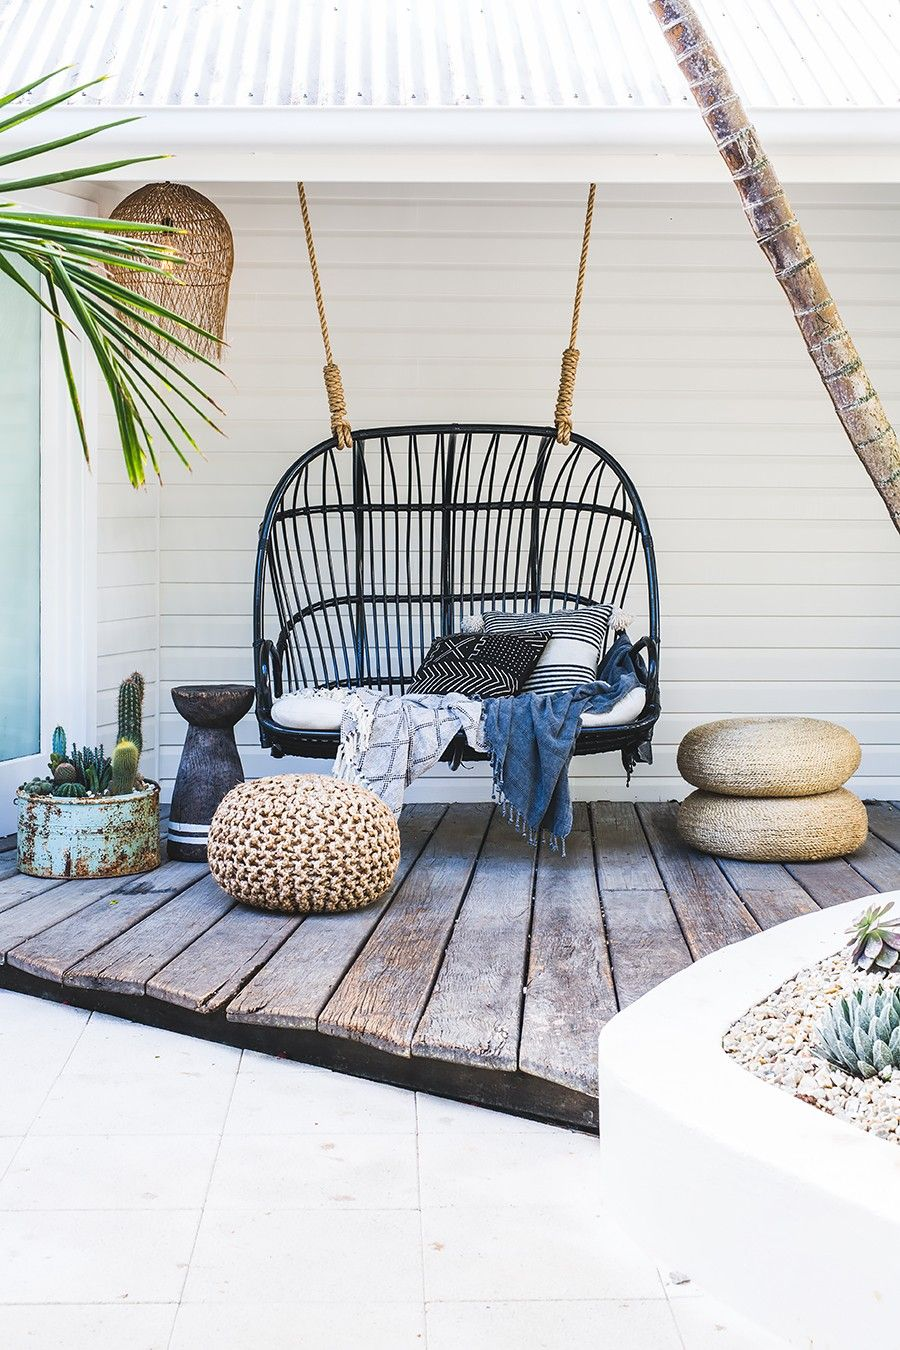 Charmant This Byron Bay Fashion Boutique Is A Bohemian Dream Via @MyDomaine Swinging  Chair, Outdoor